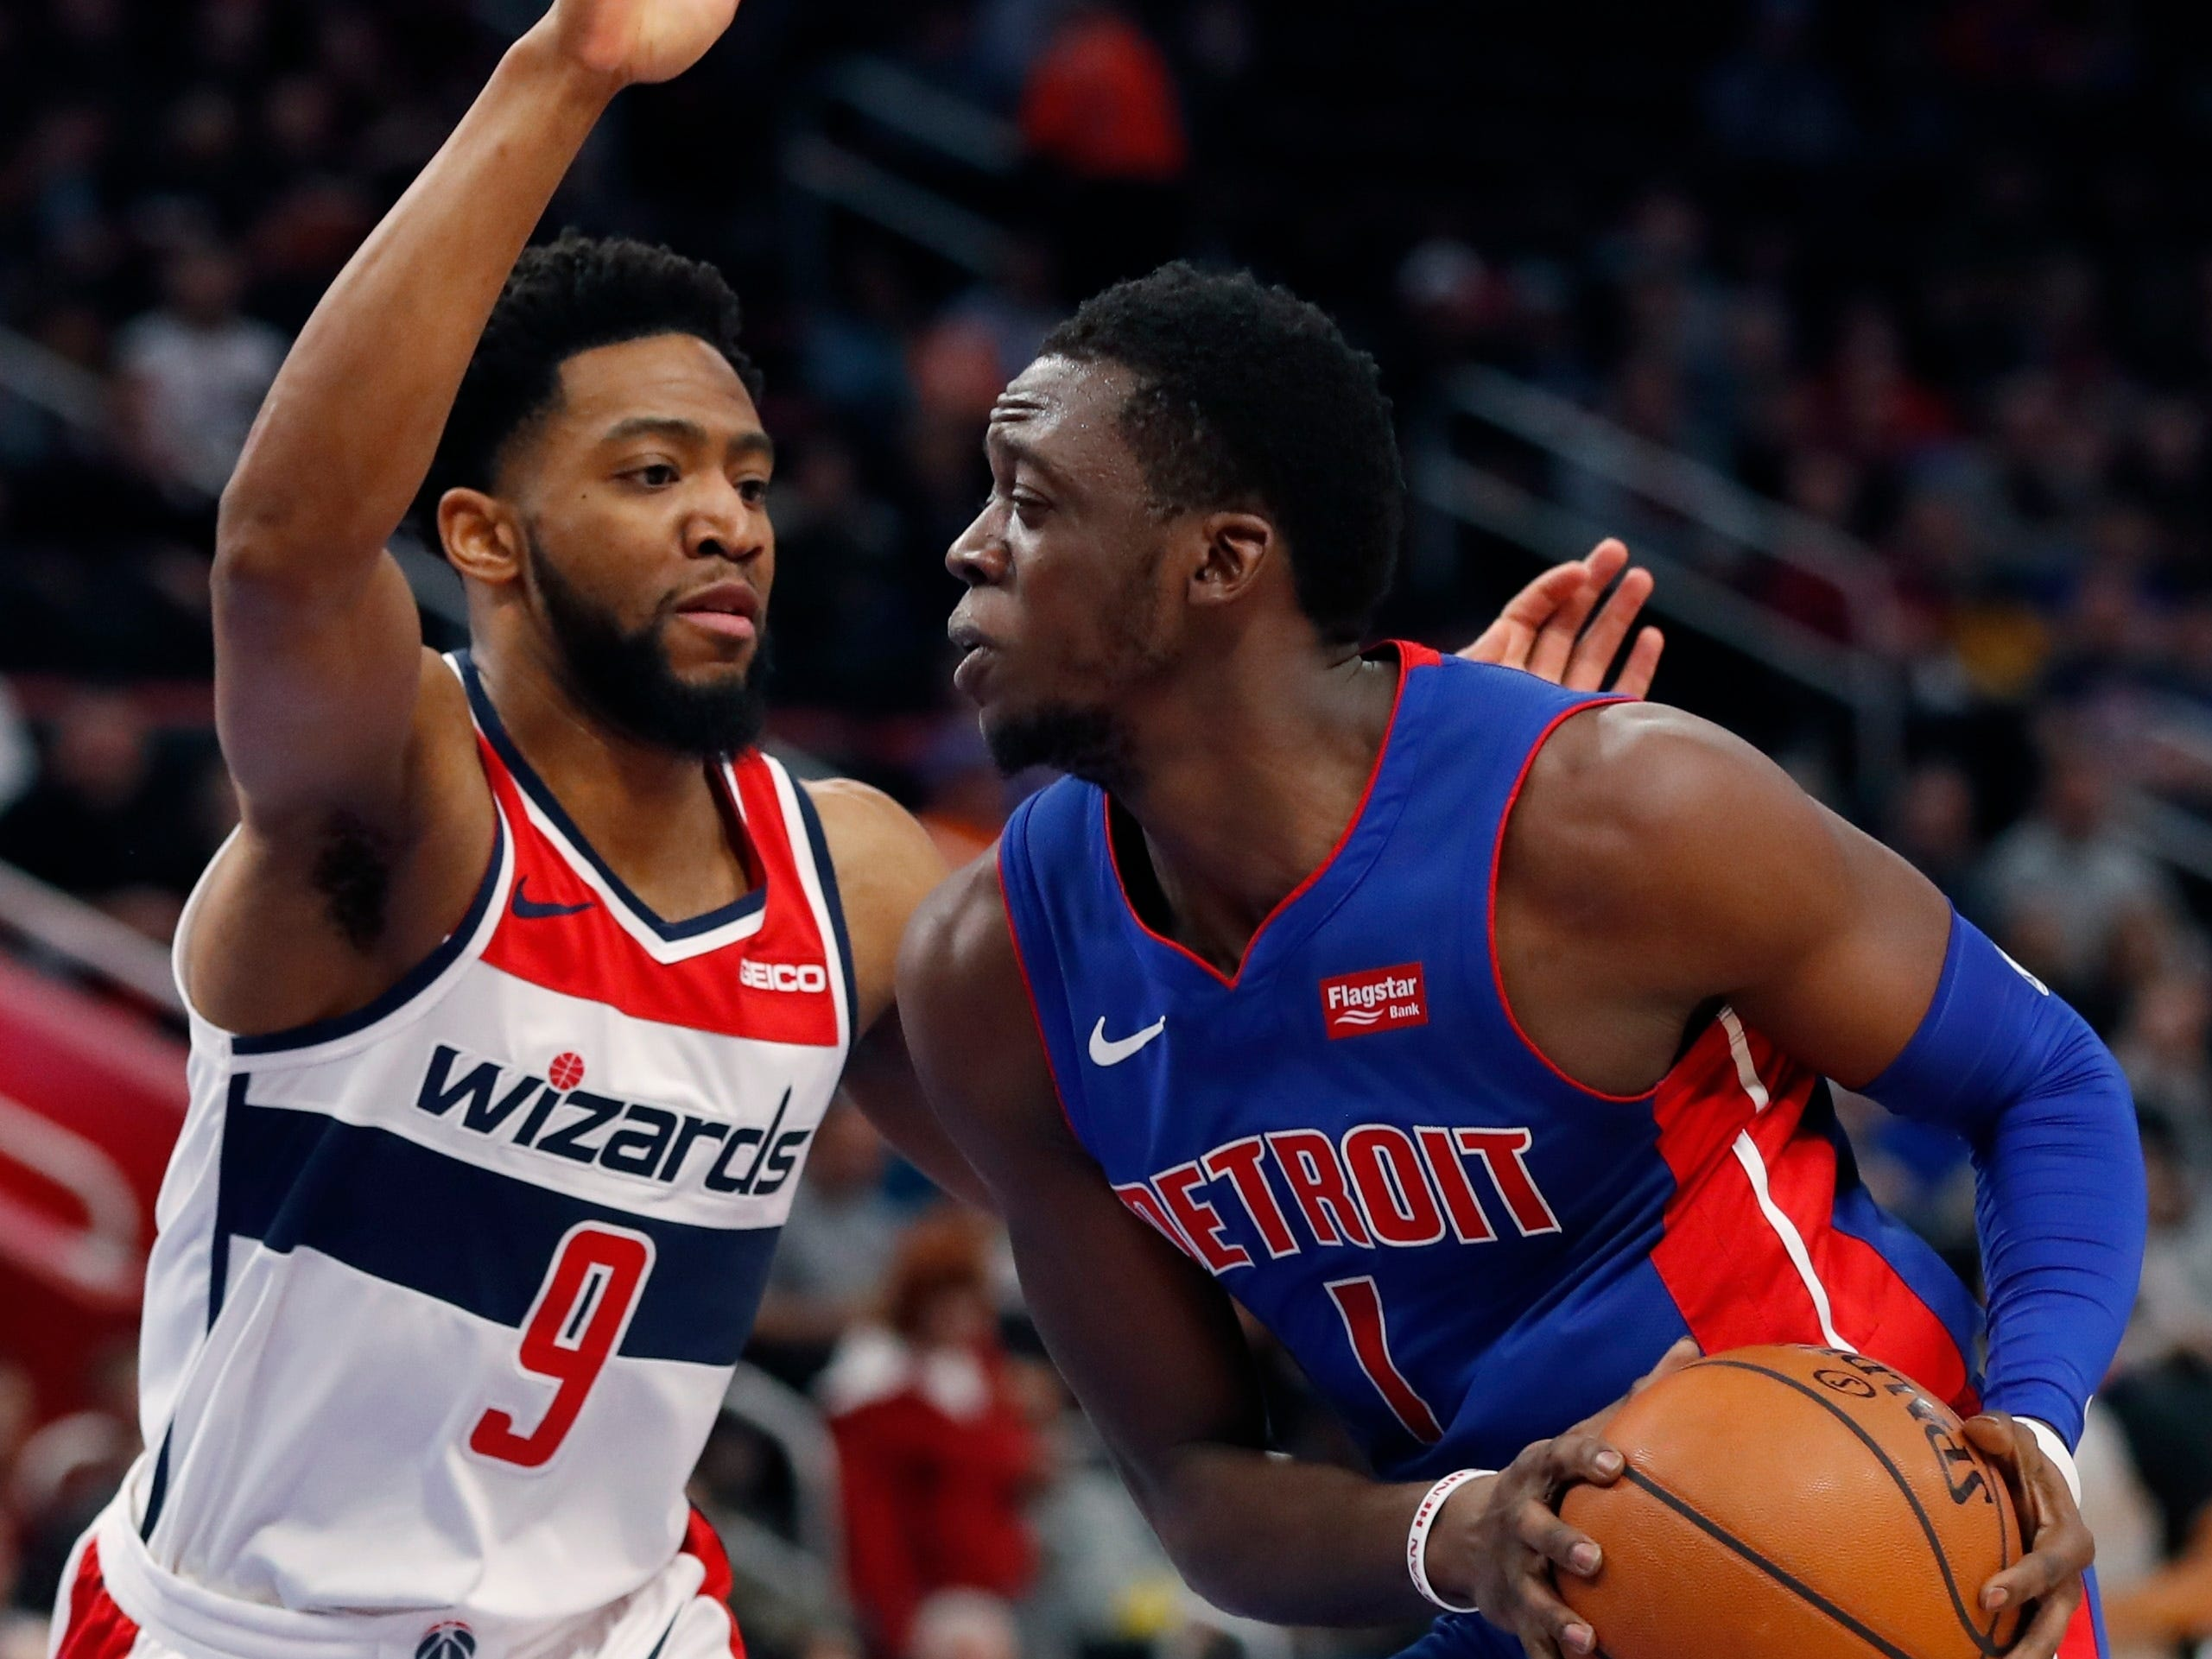 Detroit Pistons guard Reggie Jackson is defended by Washington Wizards guard Chasson Randle during the first half Monday, Feb. 11, 2019, in Detroit.